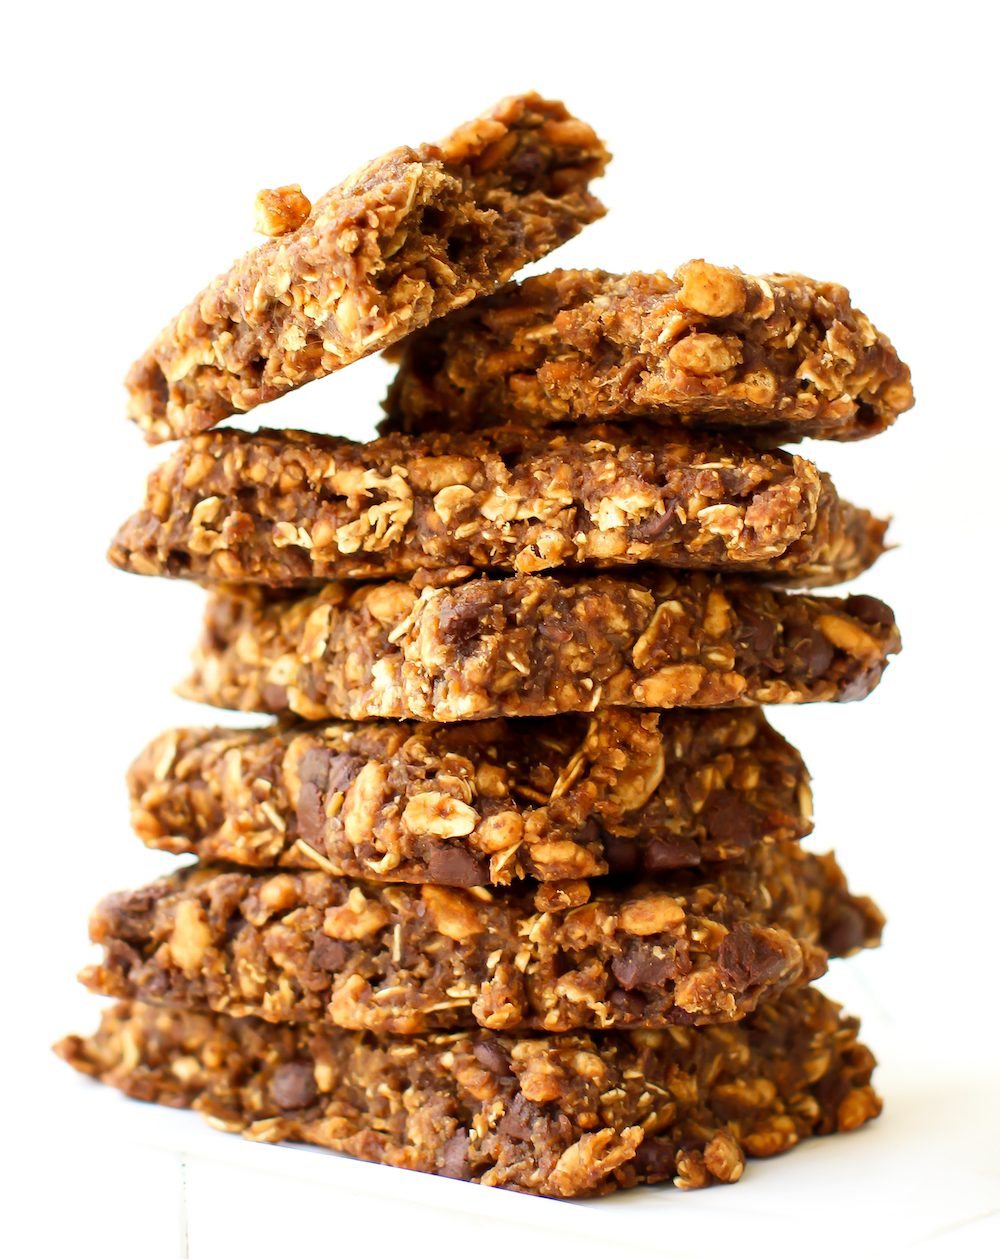 How To Make Your Own Protein Bars At Home